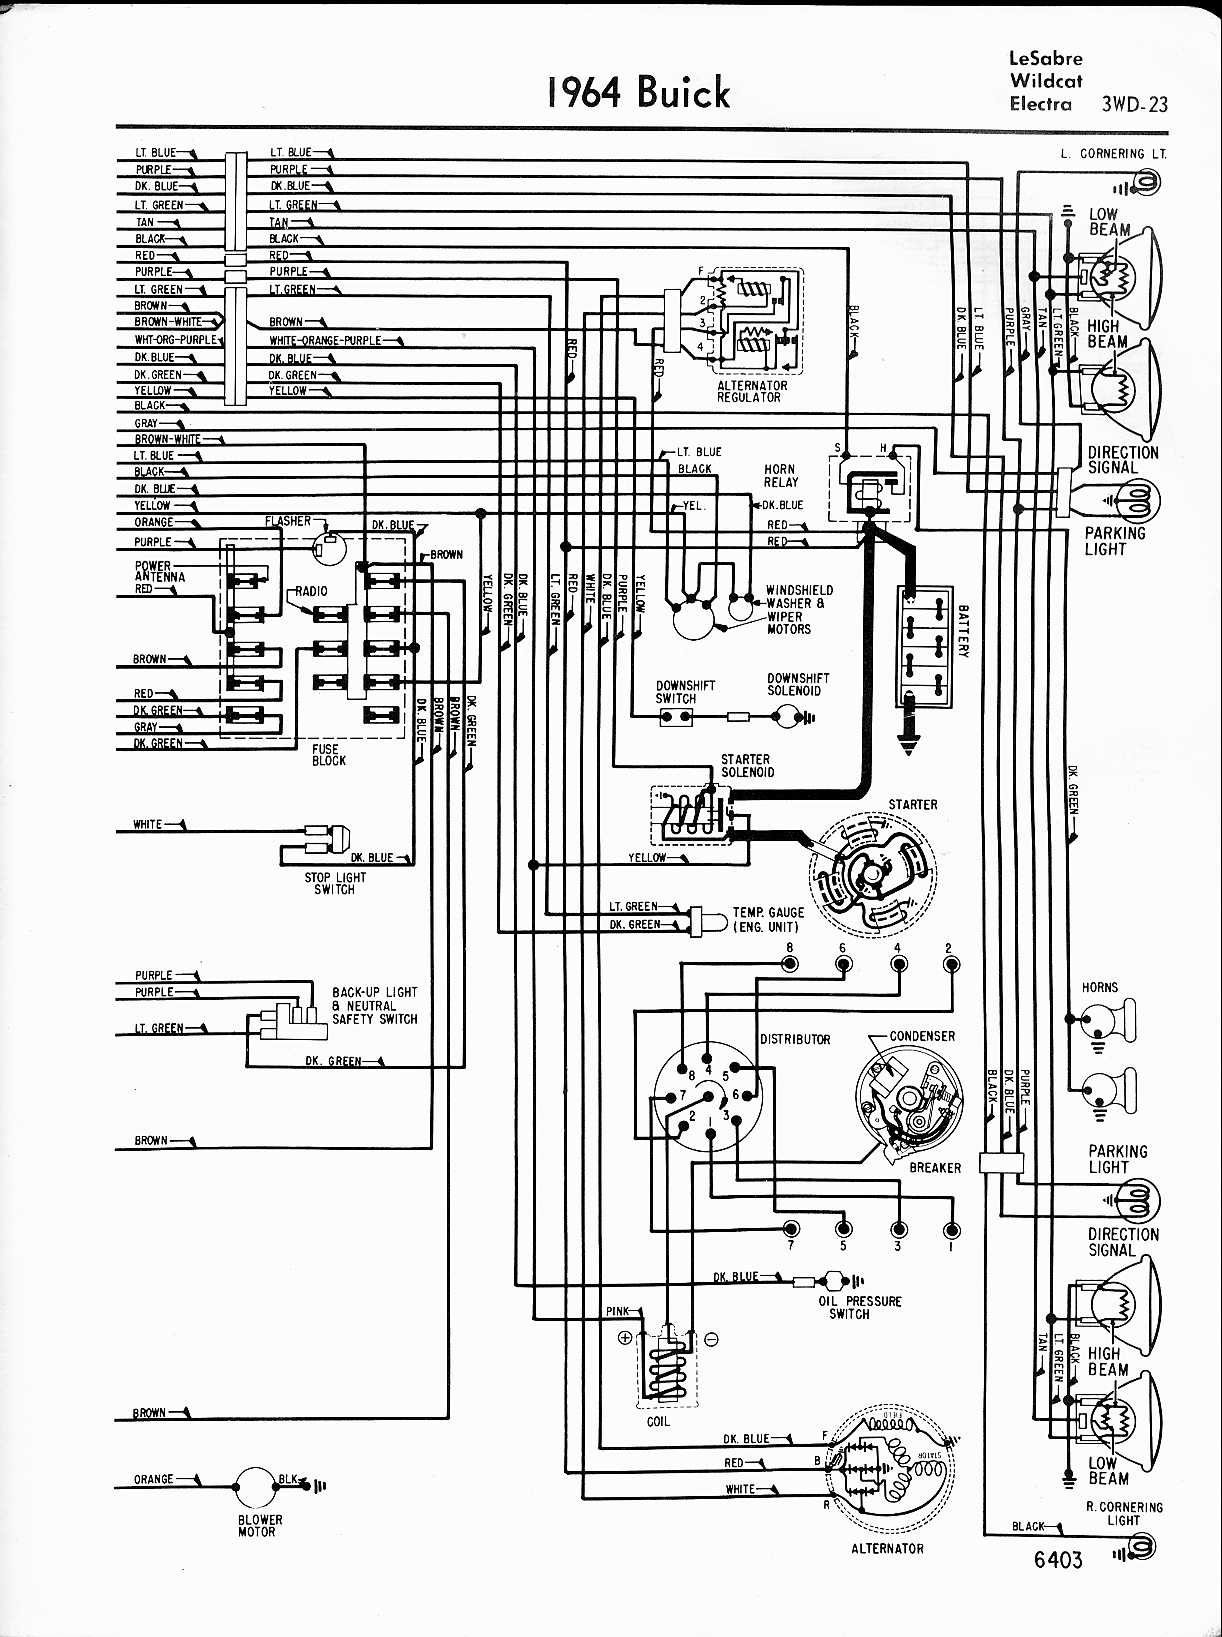 01 Buick Lesabre Ecm Wiring Diagram | Wiring Diagram on impreza wiring diagram, uplander wiring diagram, f250 super duty wiring diagram, grand am wiring diagram, blazer wiring diagram, galant wiring diagram, grand prix wiring diagram, lumina wiring diagram, 300m wiring diagram, new beetle wiring diagram, allante wiring diagram, century wiring diagram, monte carlo ss wiring diagram, impala wiring diagram,